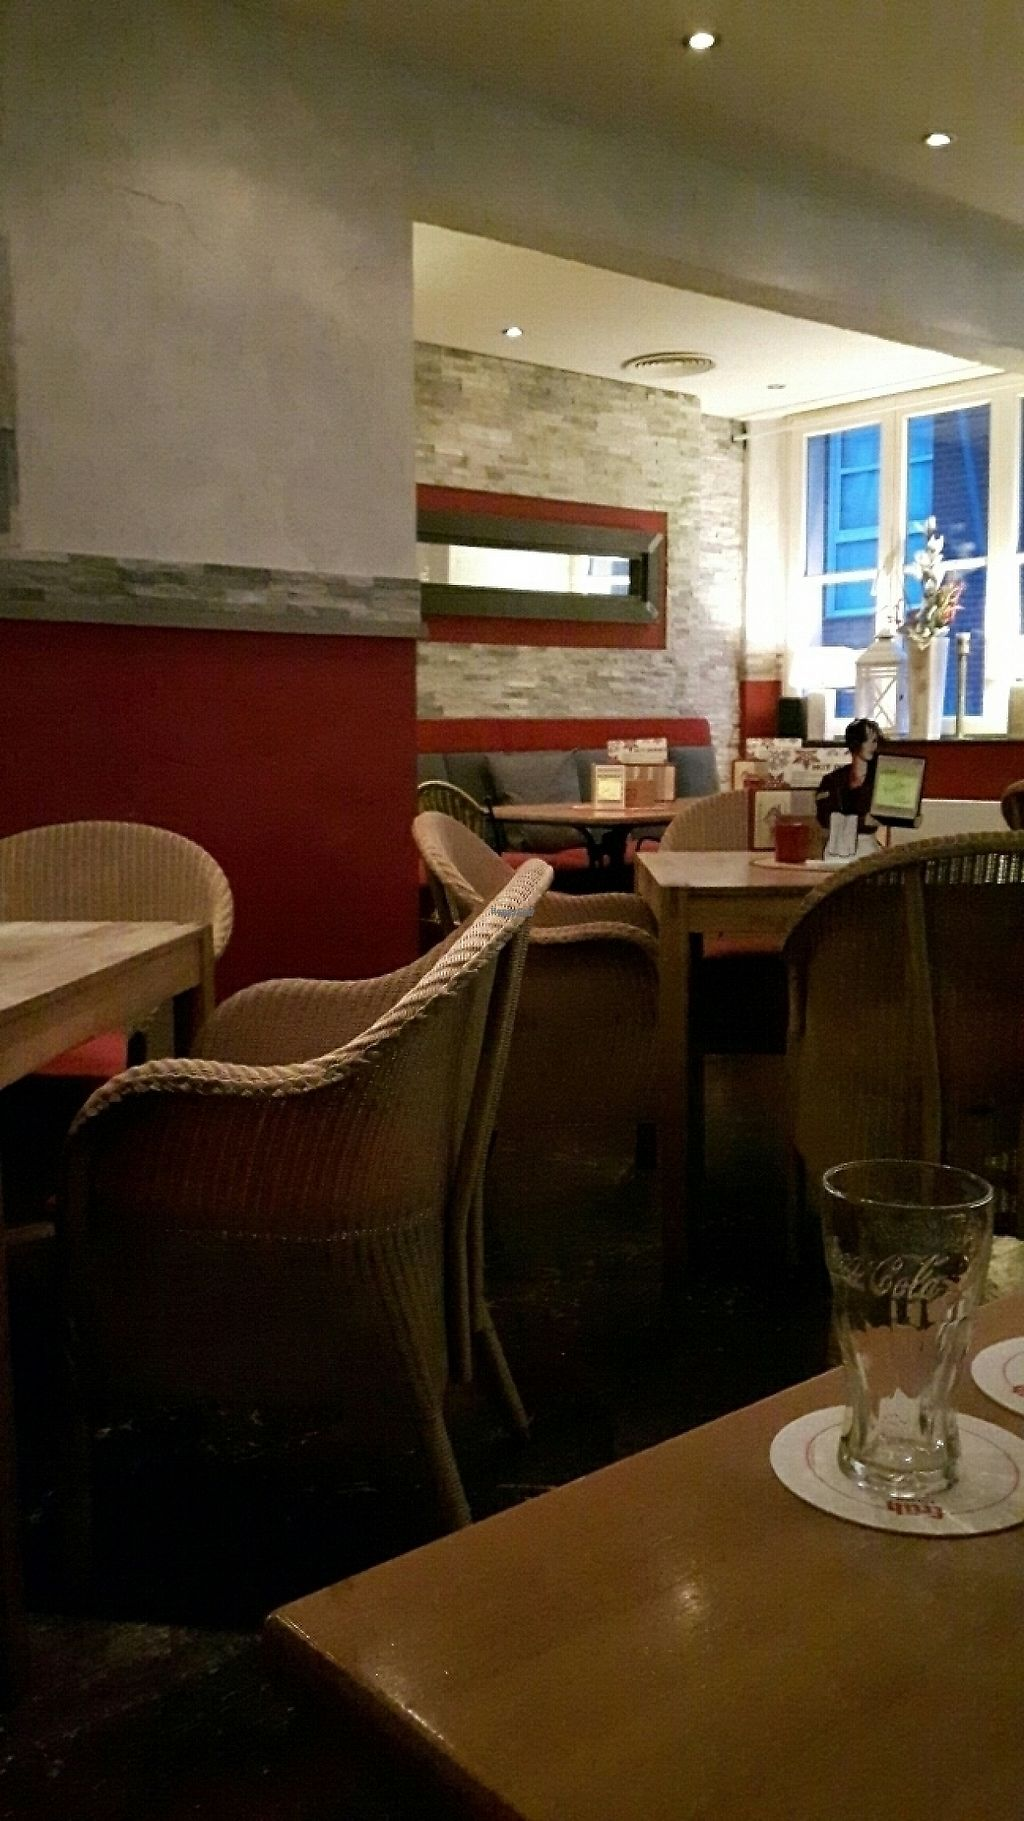 """Photo of Cafe Vivendi  by <a href=""""/members/profile/Yilla"""">Yilla</a> <br/>seating <br/> March 4, 2017  - <a href='/contact/abuse/image/83616/232568'>Report</a>"""